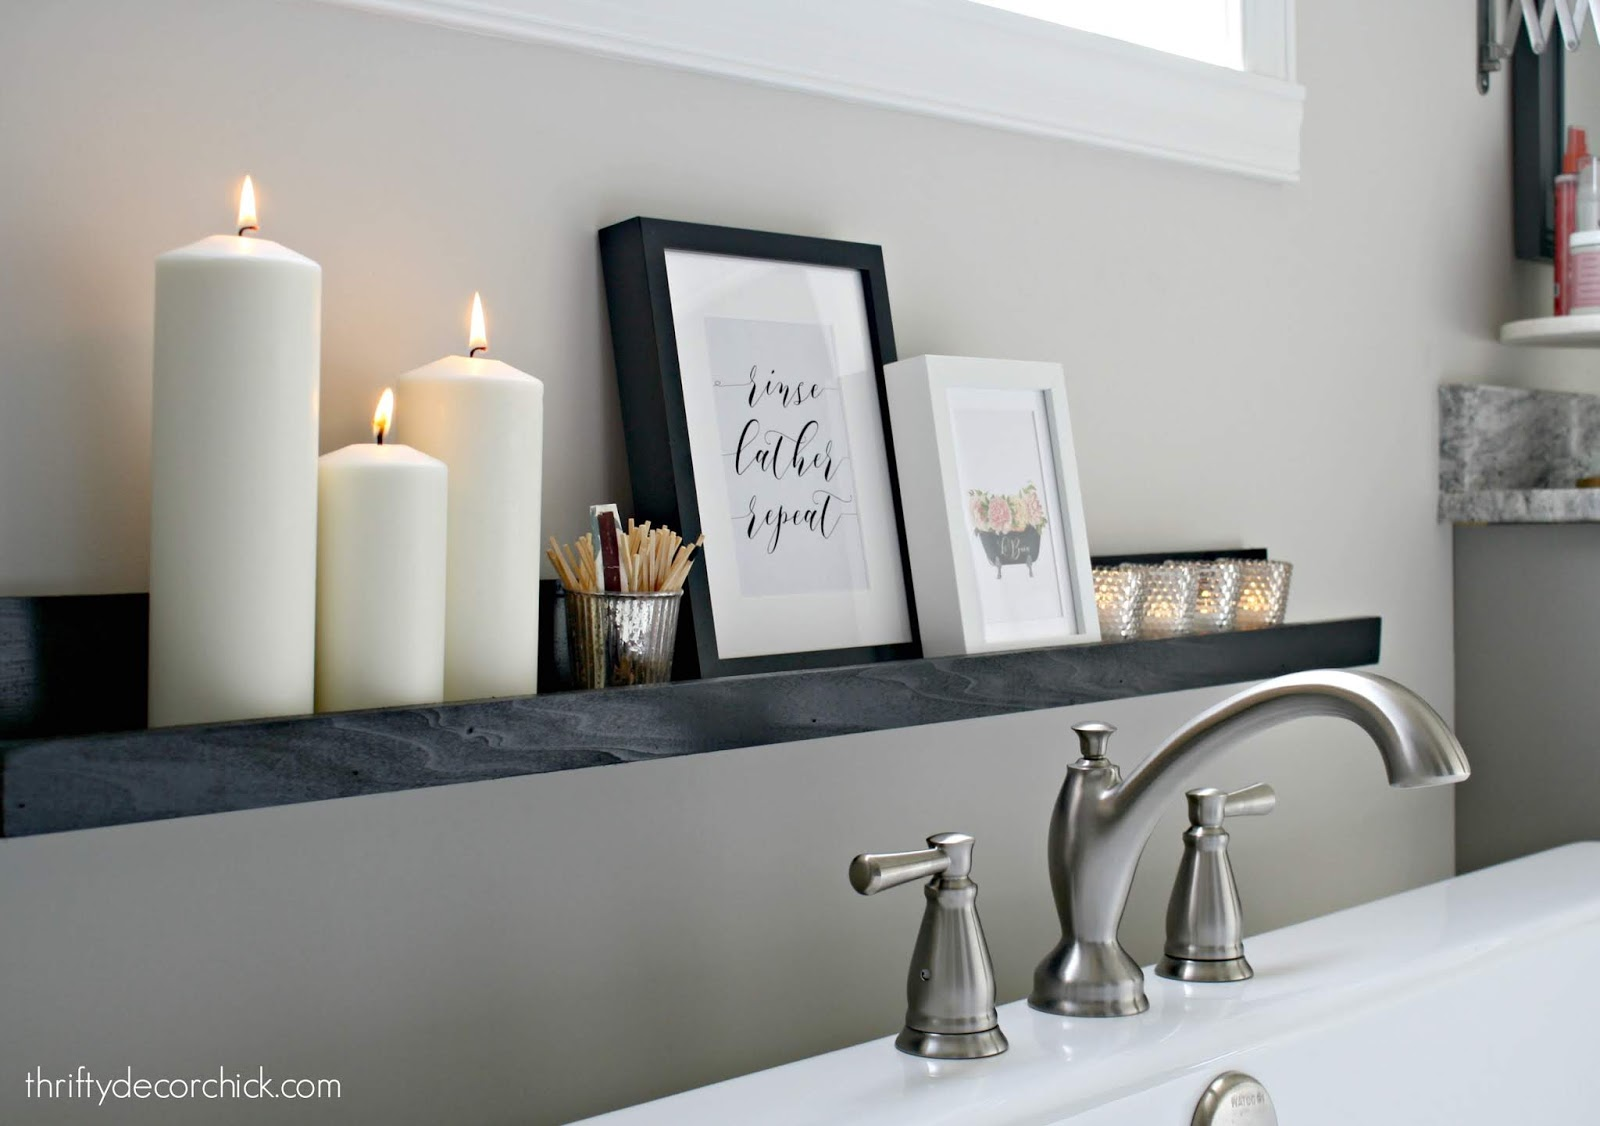 How to make a simple wood shelf for candles in bathroom